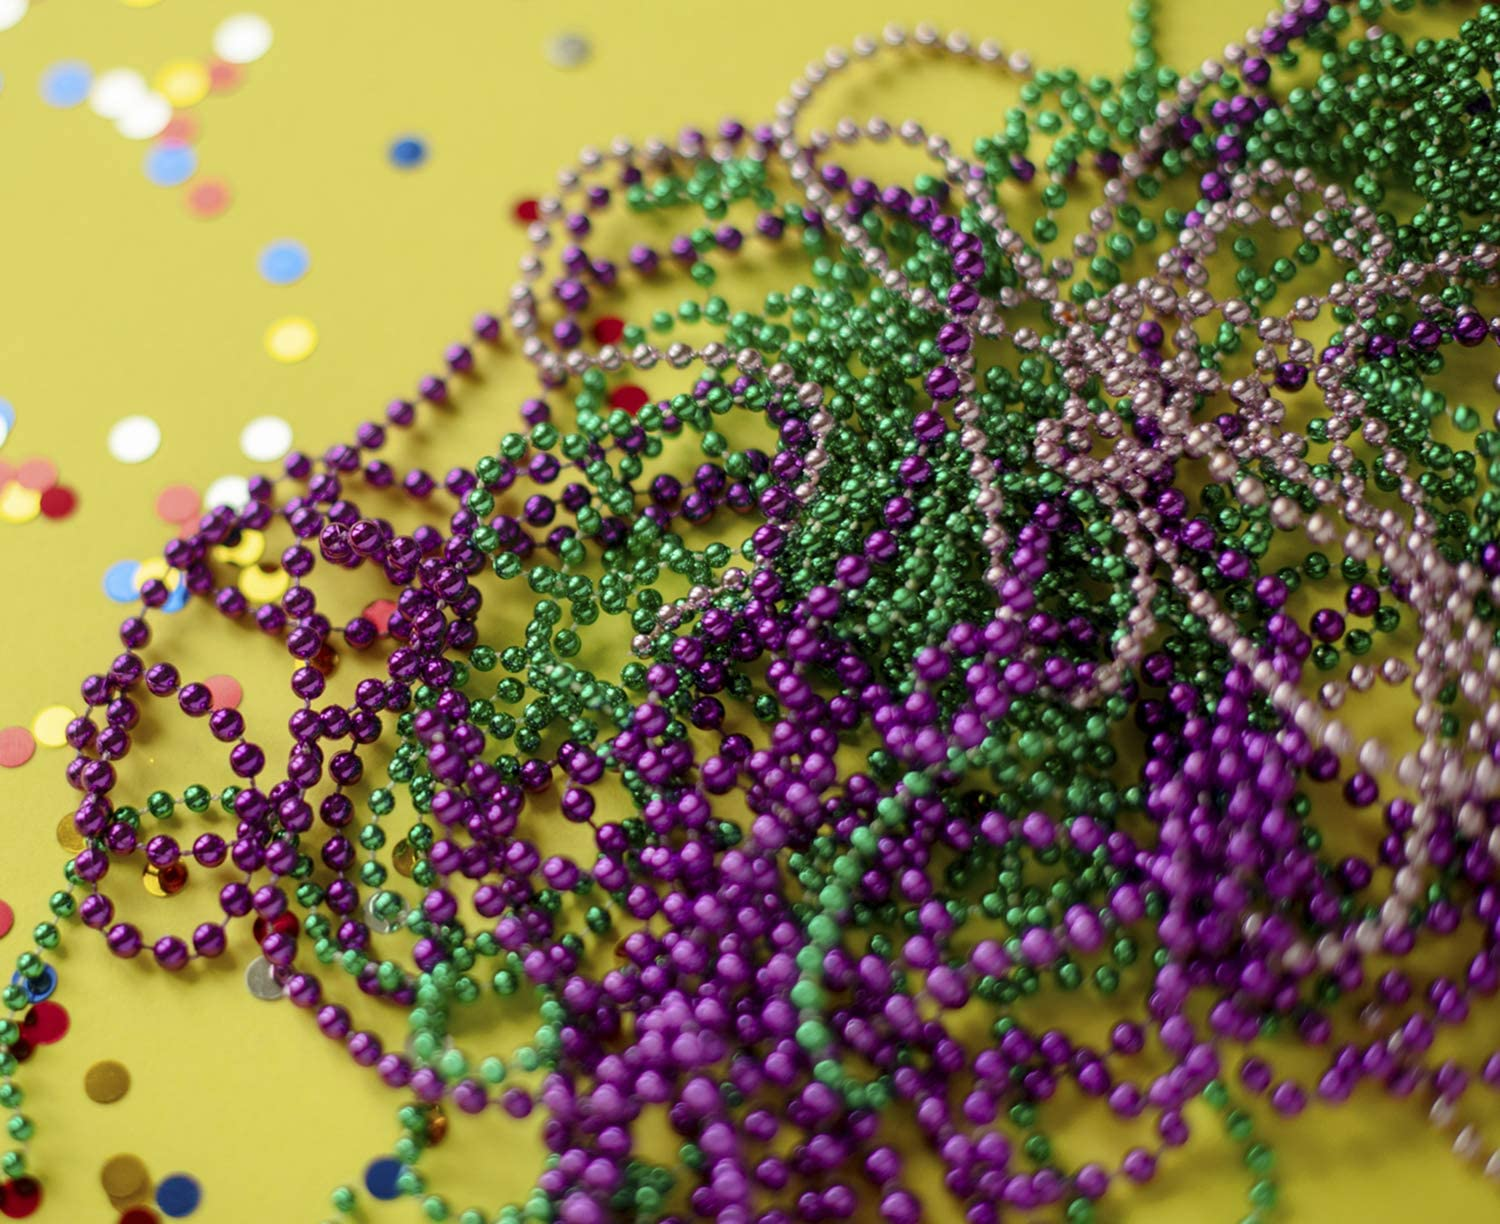 LSKOO 12 Pack of Metallic Round Mardi Gras Costume Necklace,Colorful Assorted Beaded Necklace 33 Inch 7 mm for Events and Party Favor